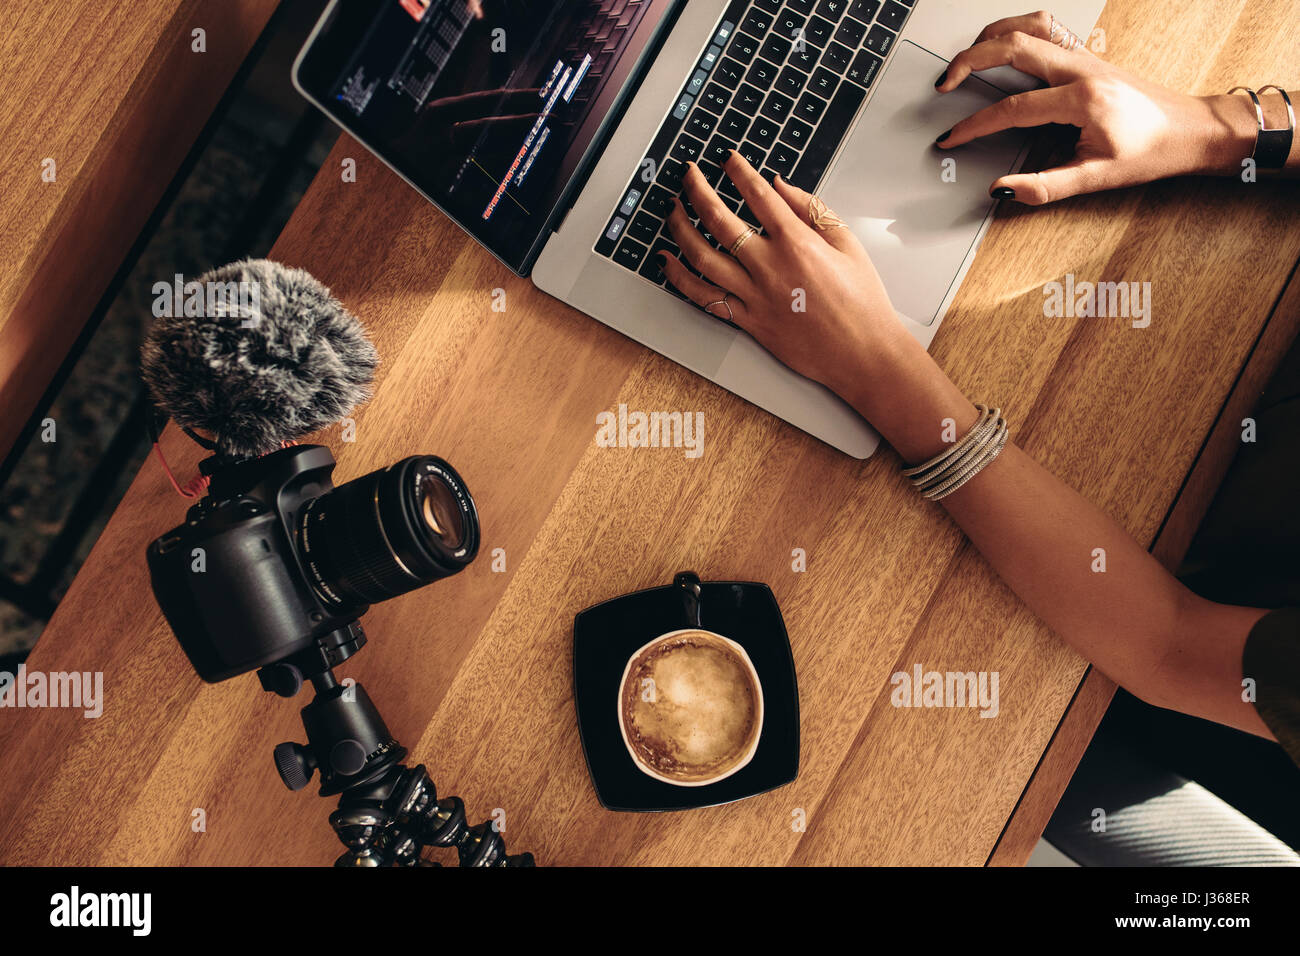 Top view of female vlogger editing video on laptop. Young woman working on computer with coffee and camera on table. - Stock Image